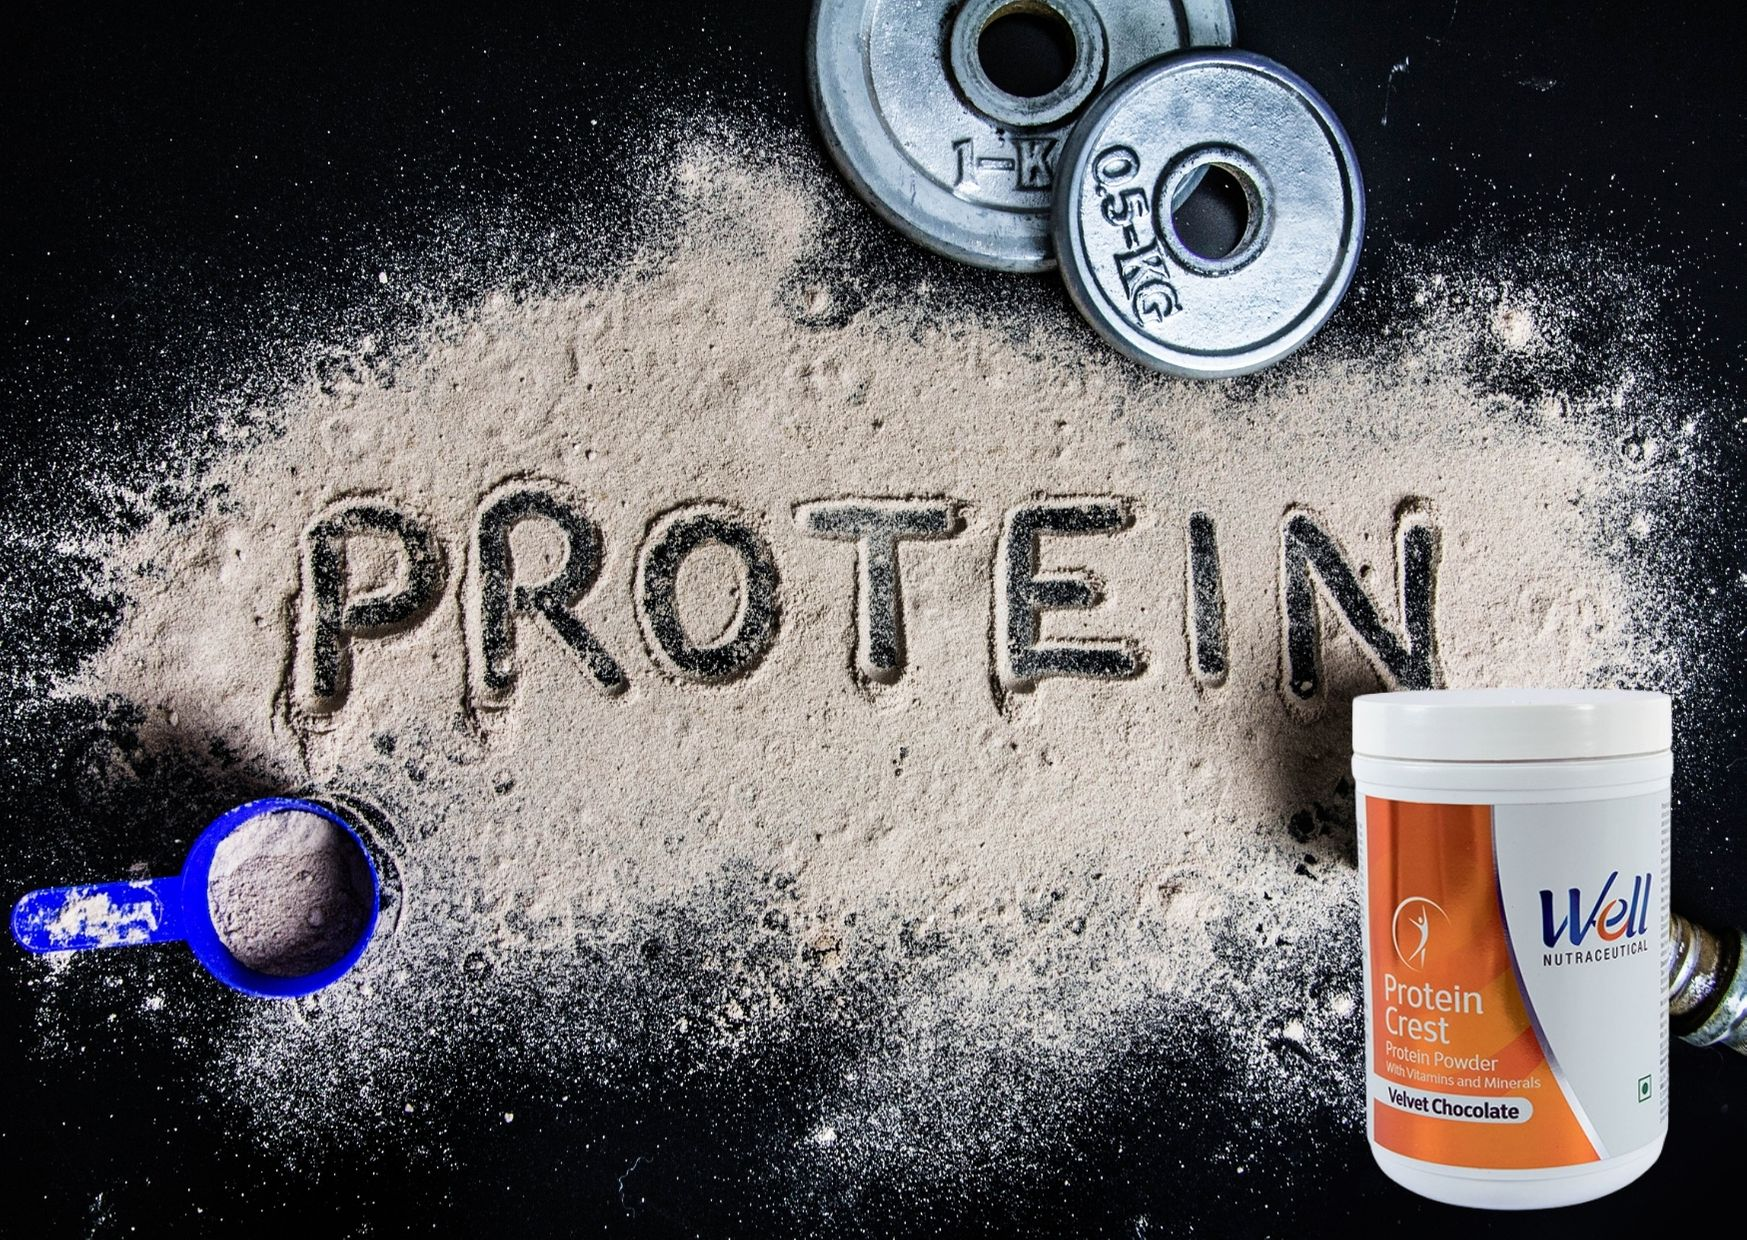 Modicare well protein crest powder review